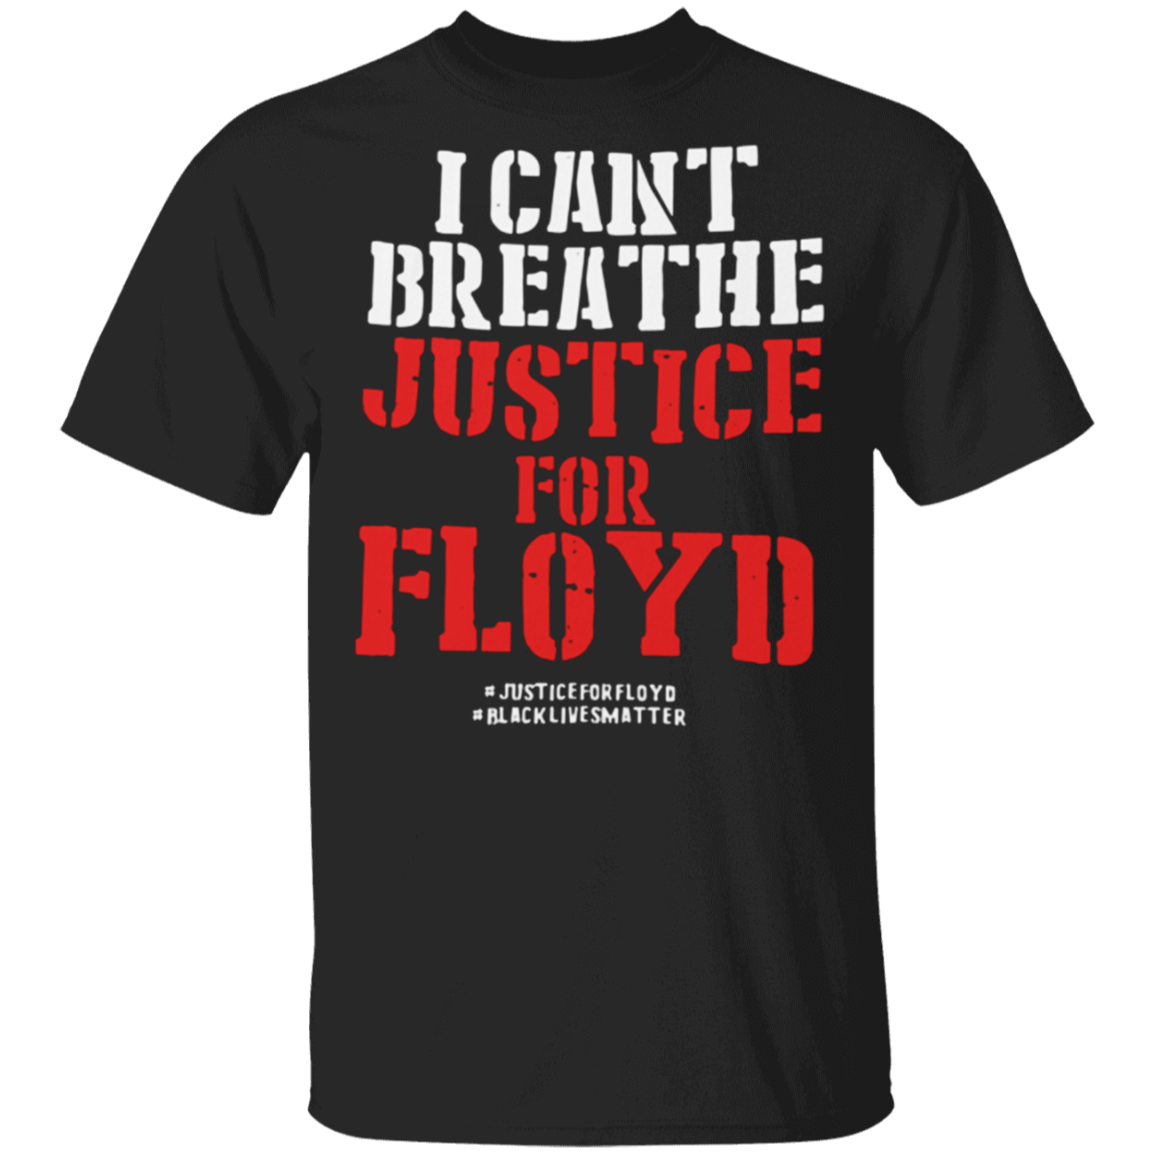 I Can't Breathe Just For Floyd T-Shirt - Black Lives Matter Shirt Protest